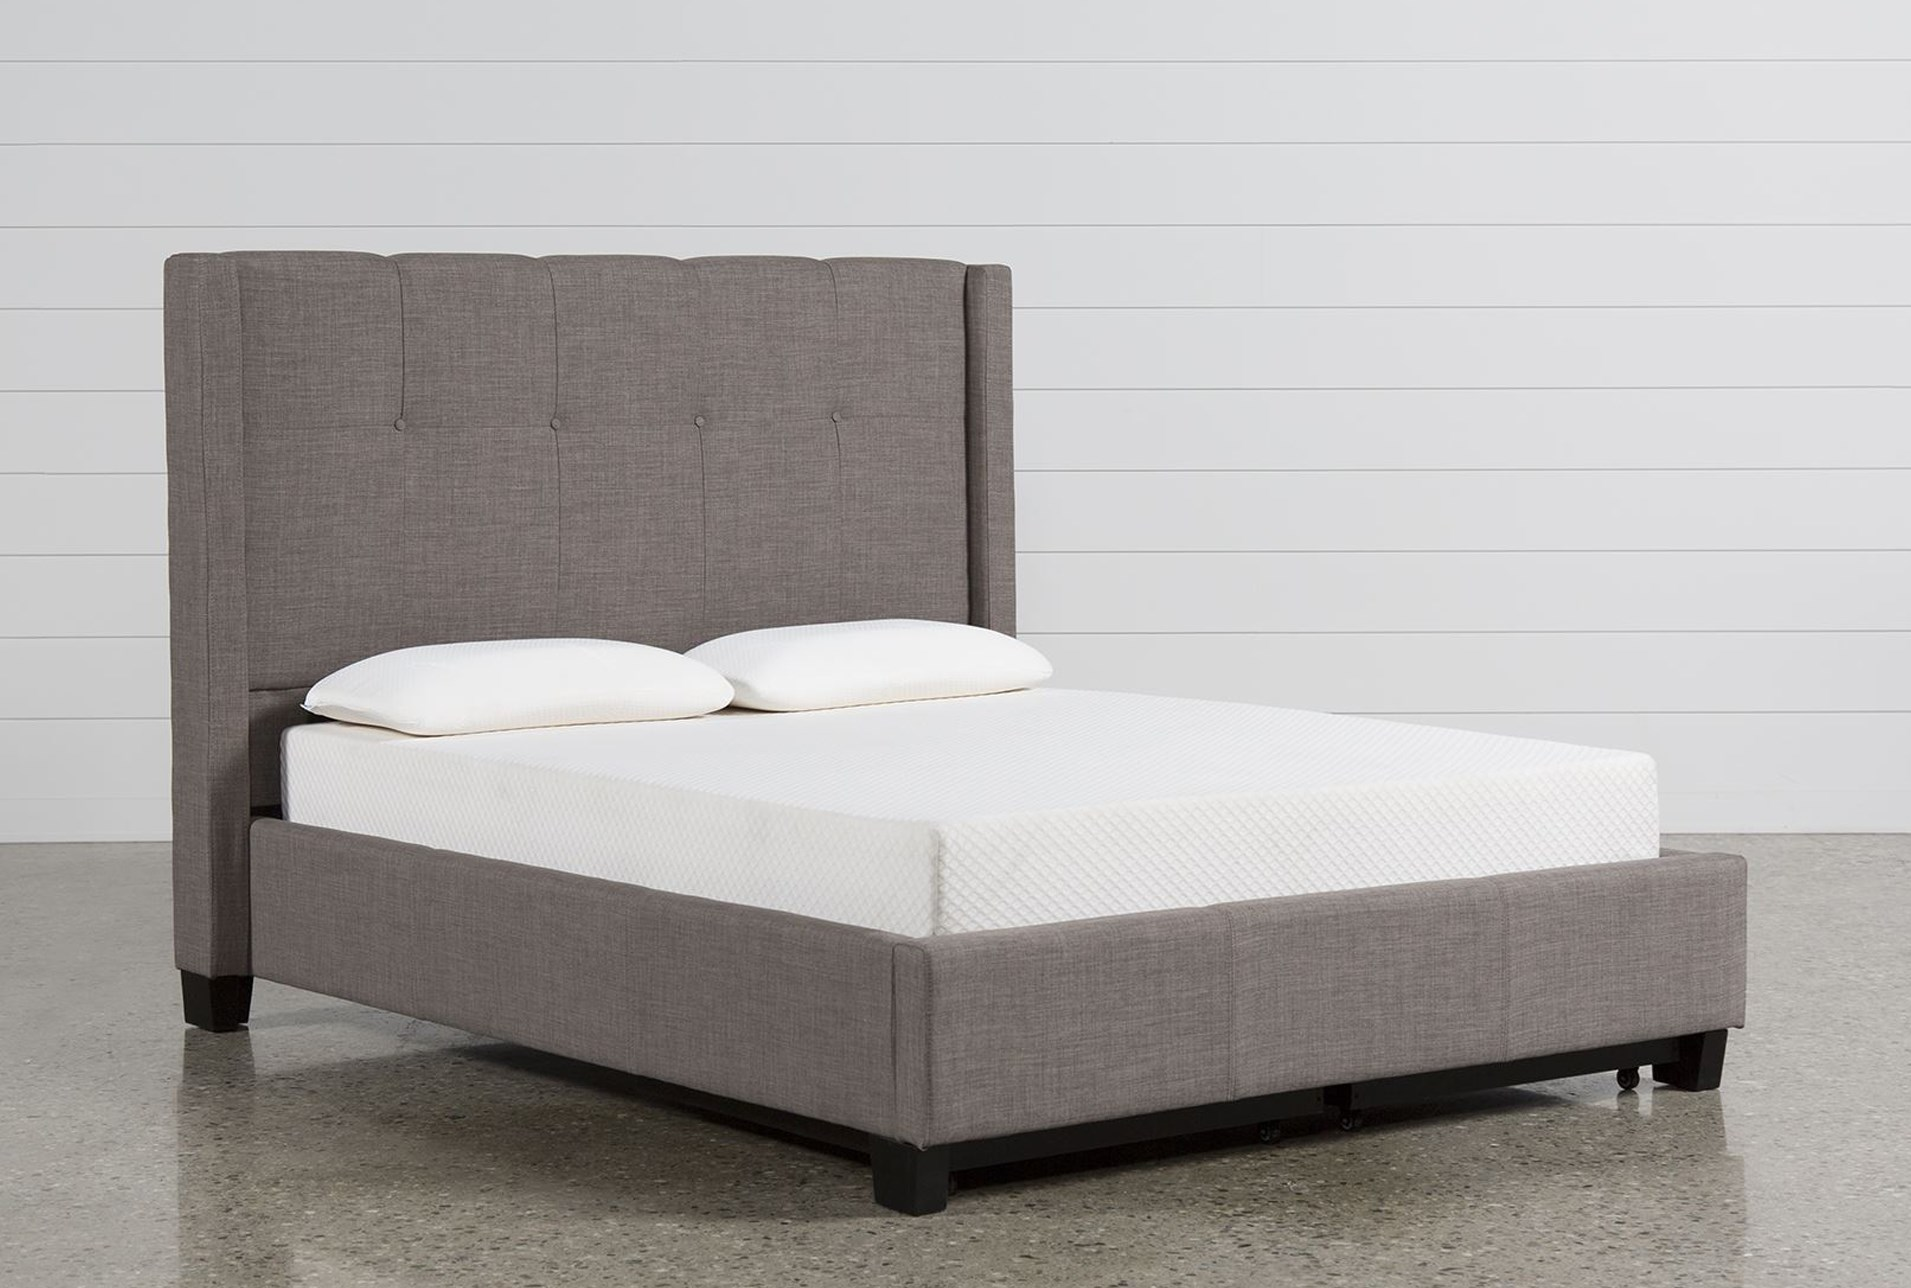 Platform Beds for Your Bedroom | Living Spaces